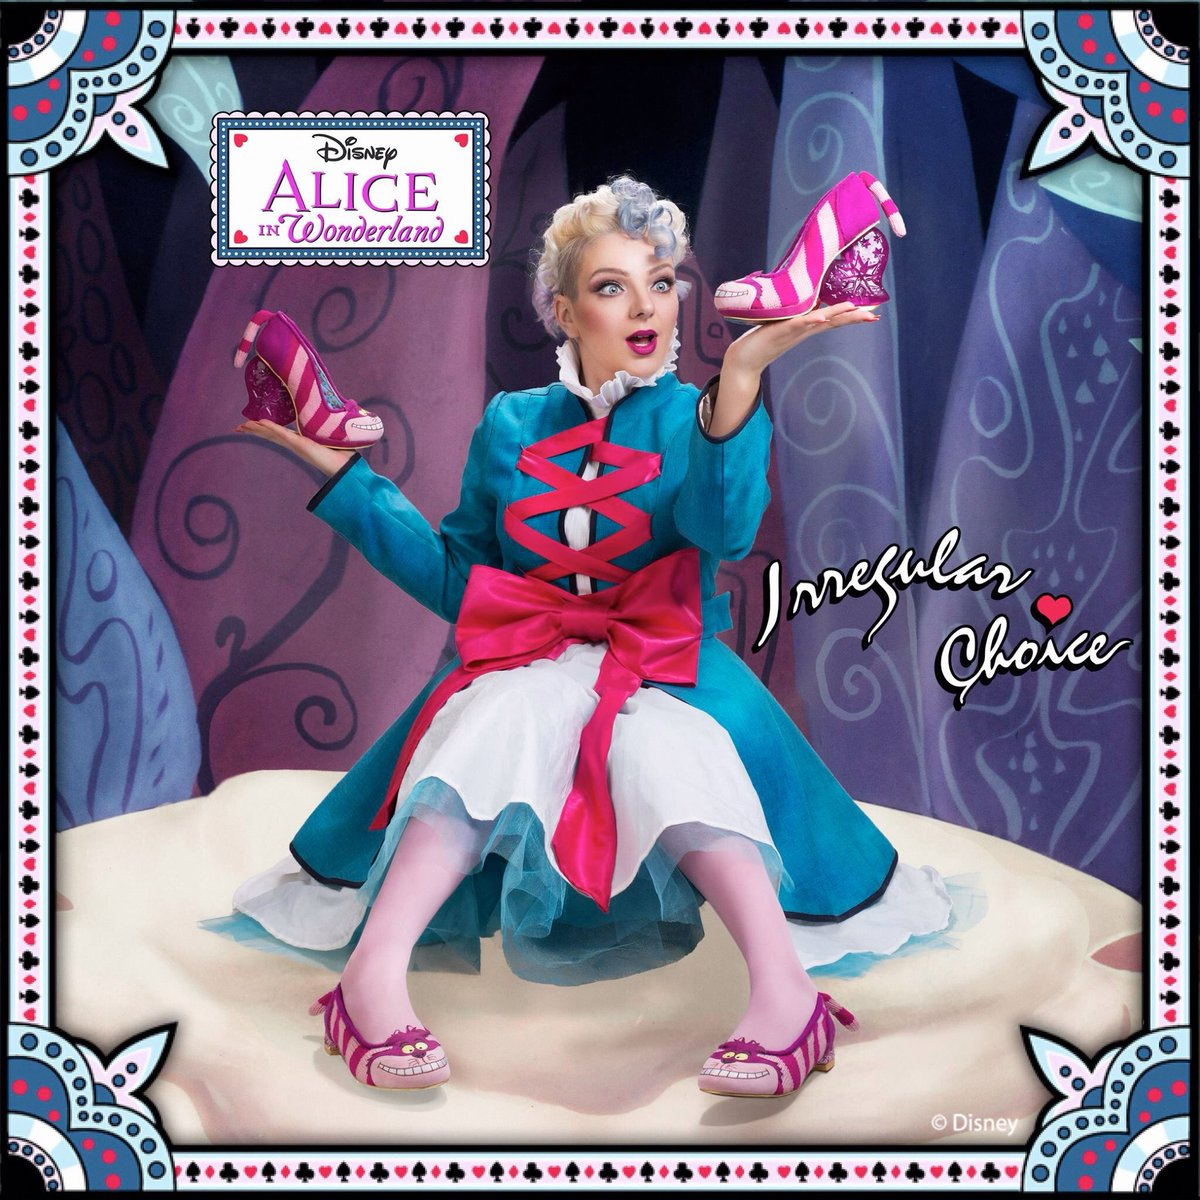 'Cheshire Cat' & 'Cheshire Flat' Limited edition Irregular Choice -  Alice in Wonderland appearing stores soon... https://t.co/mxt2Bmvdjt